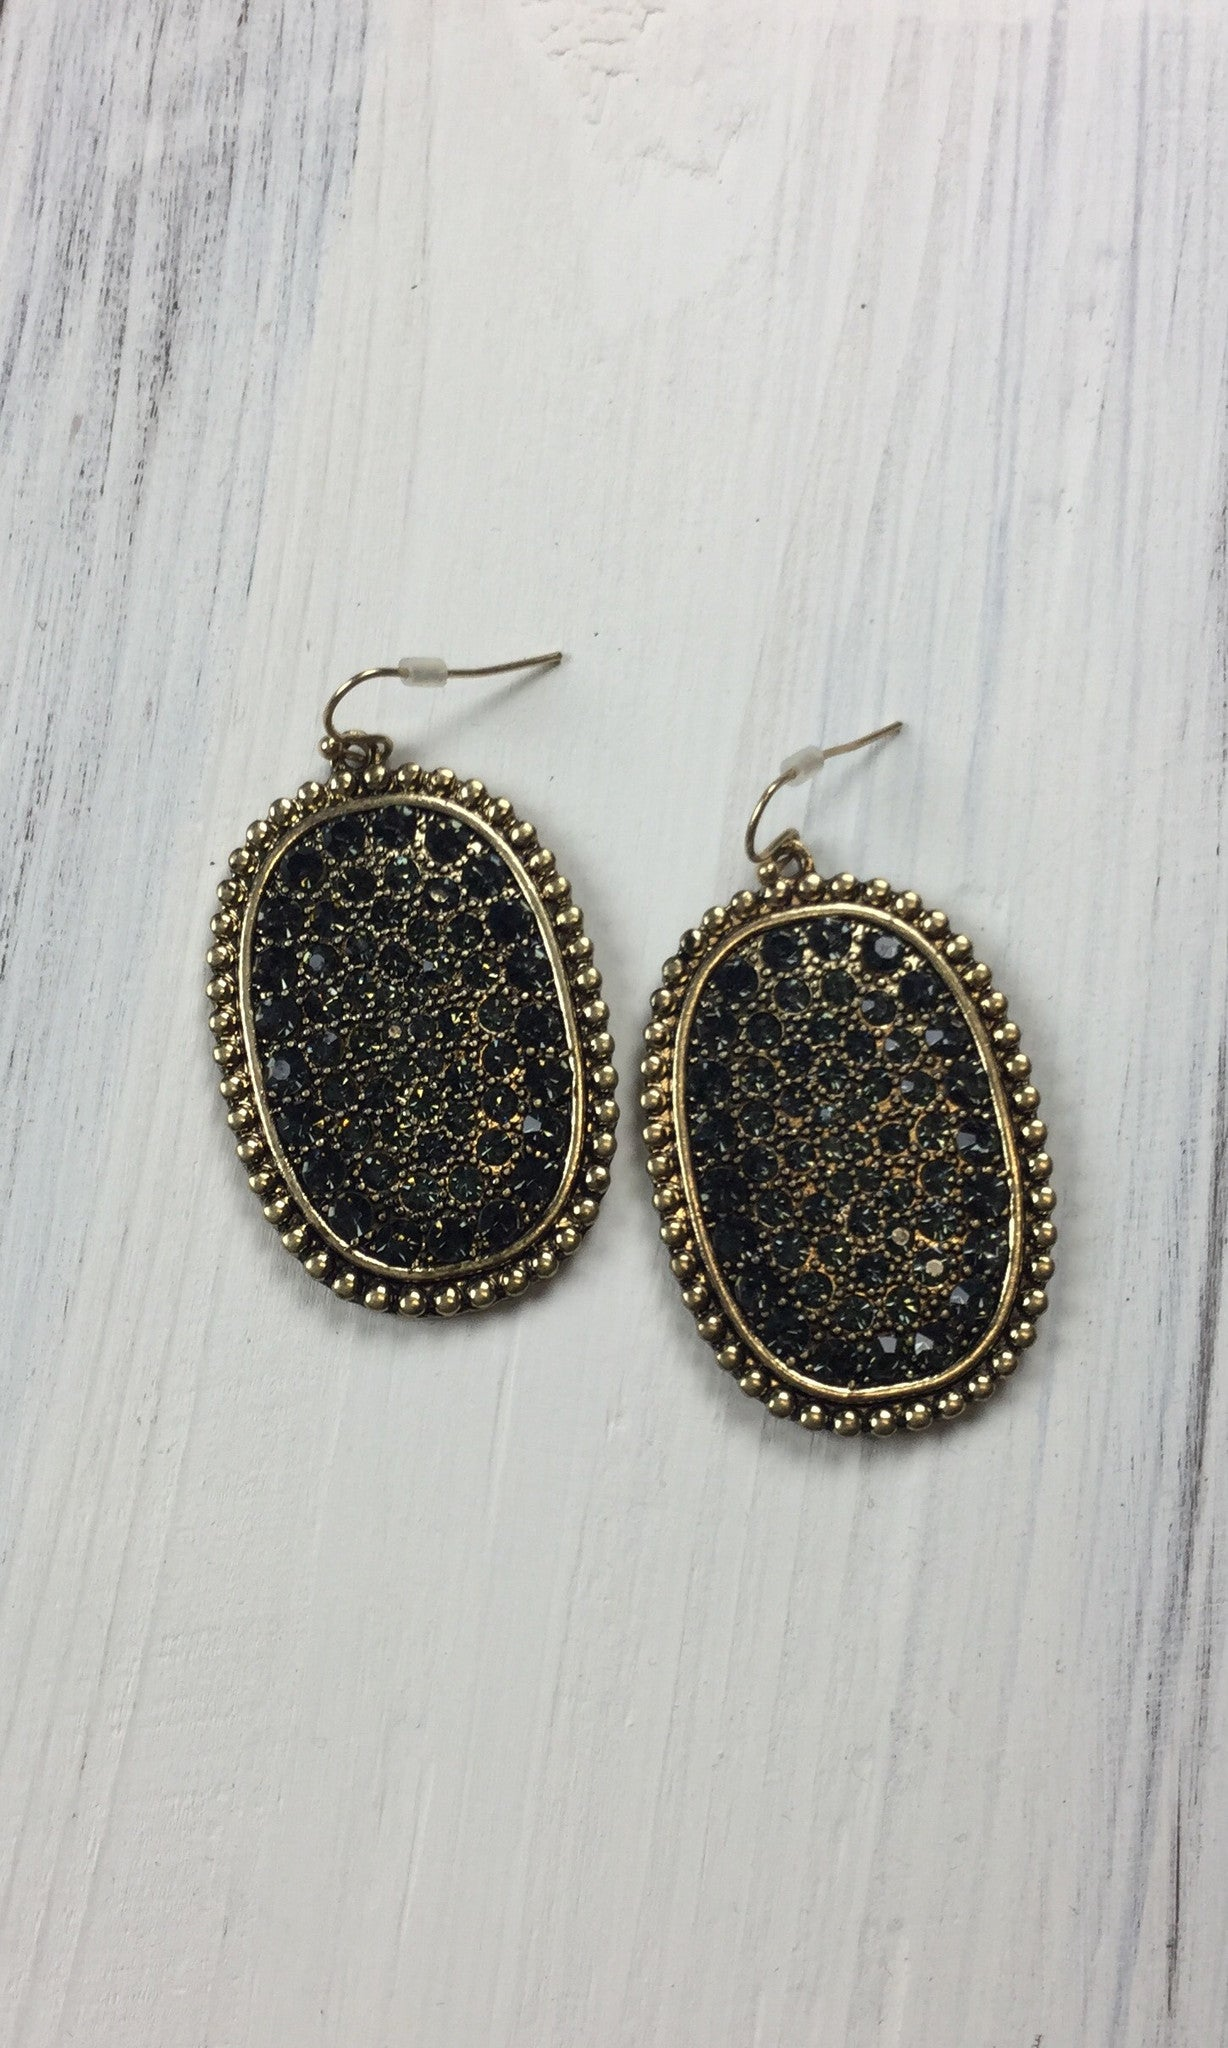 Gold With Black Bling Oval Earrings